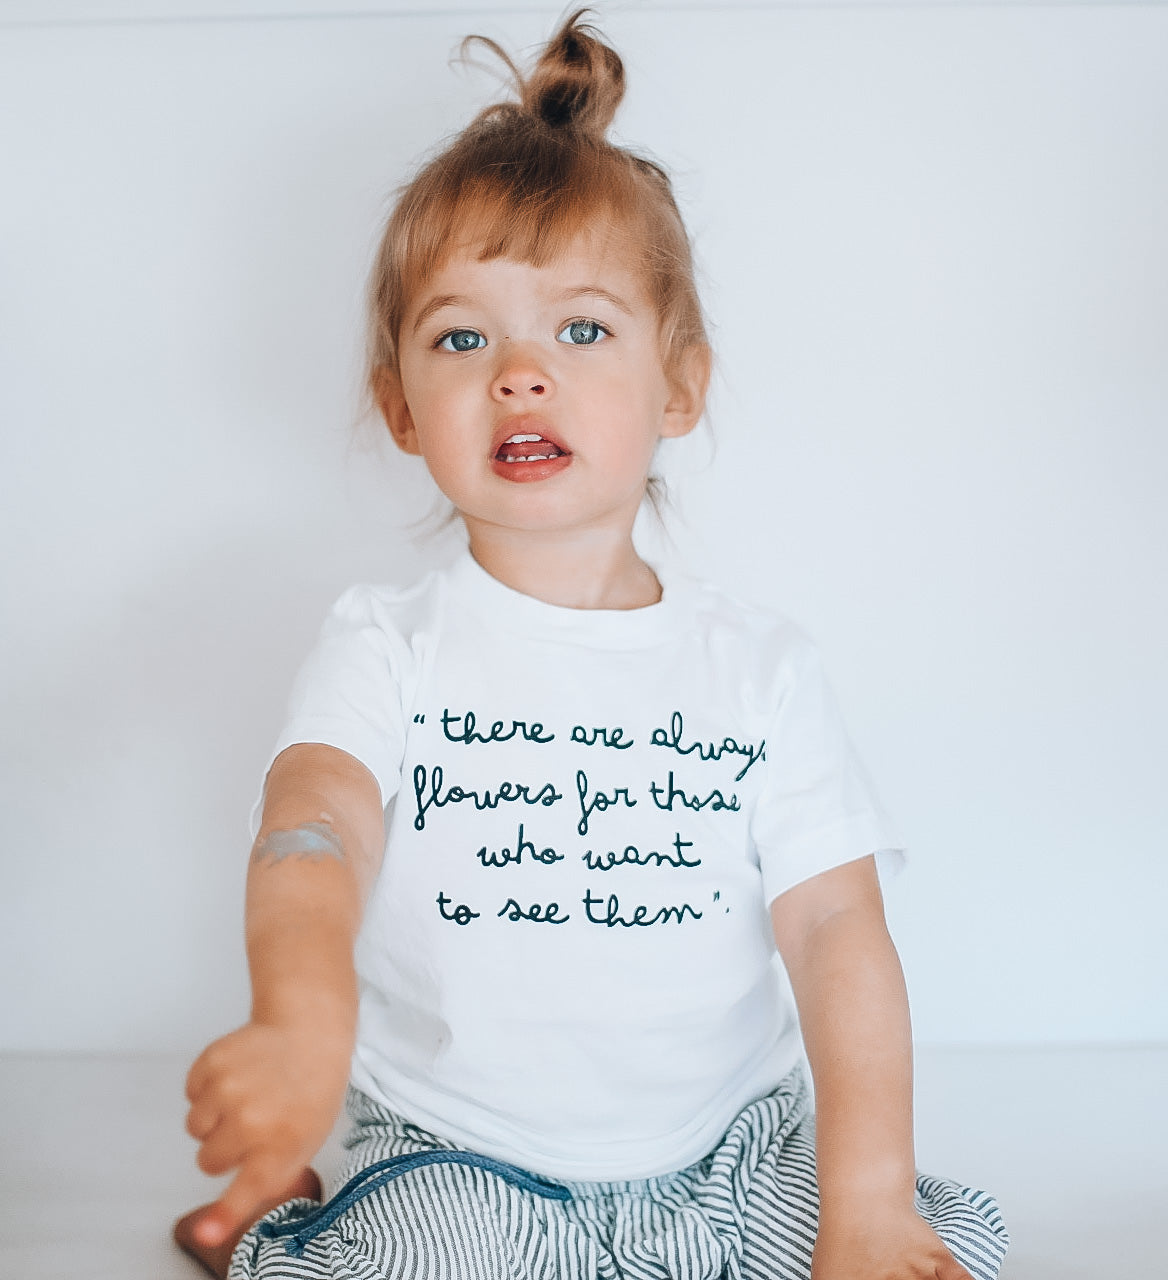 THERE ARE ALWAYS FLOWERS - Toddler Tee - Youth Tee